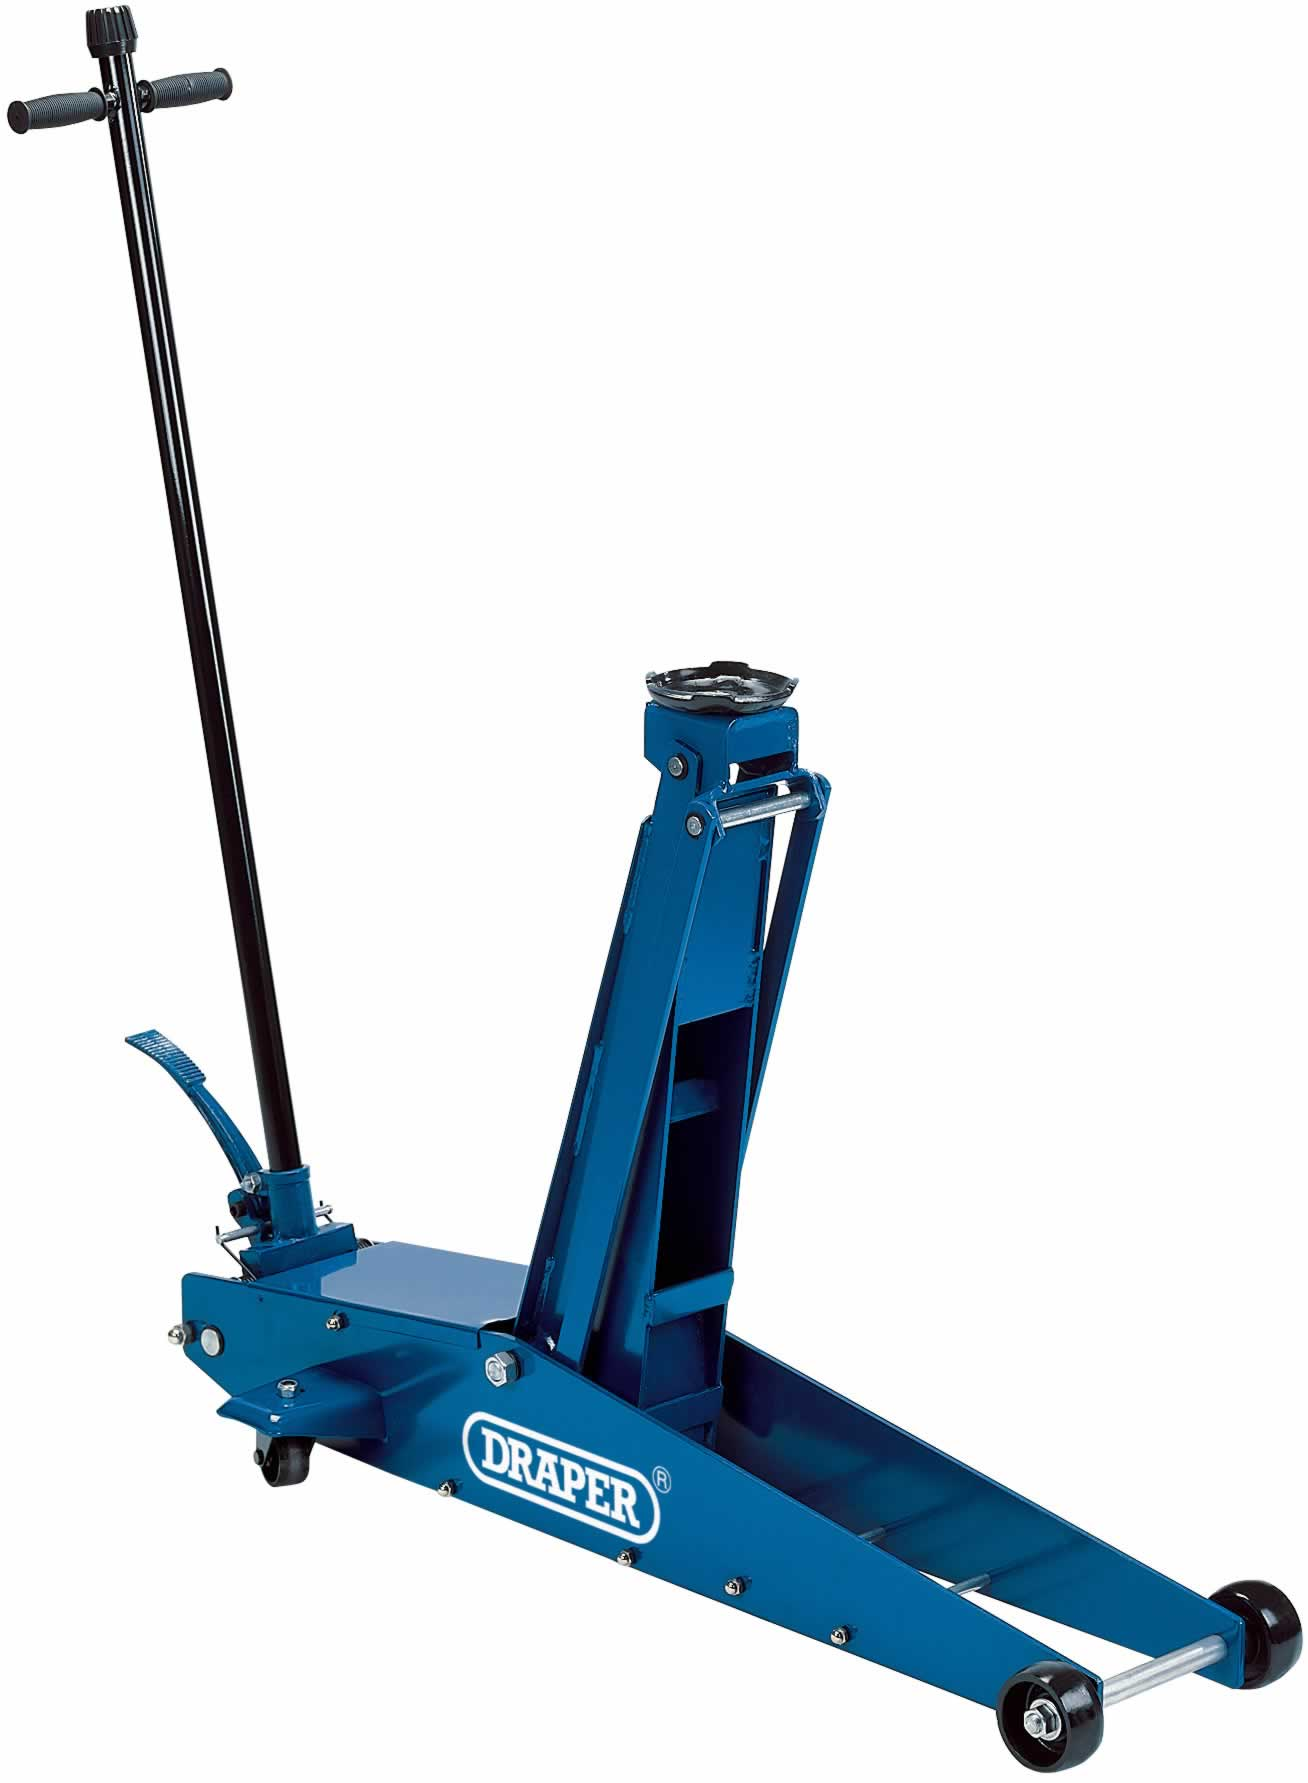 2 TONNE LONG CHASSIS HYDRAULIC TROLLEY JACK WITH 'QUICK LIFT' FACILITY